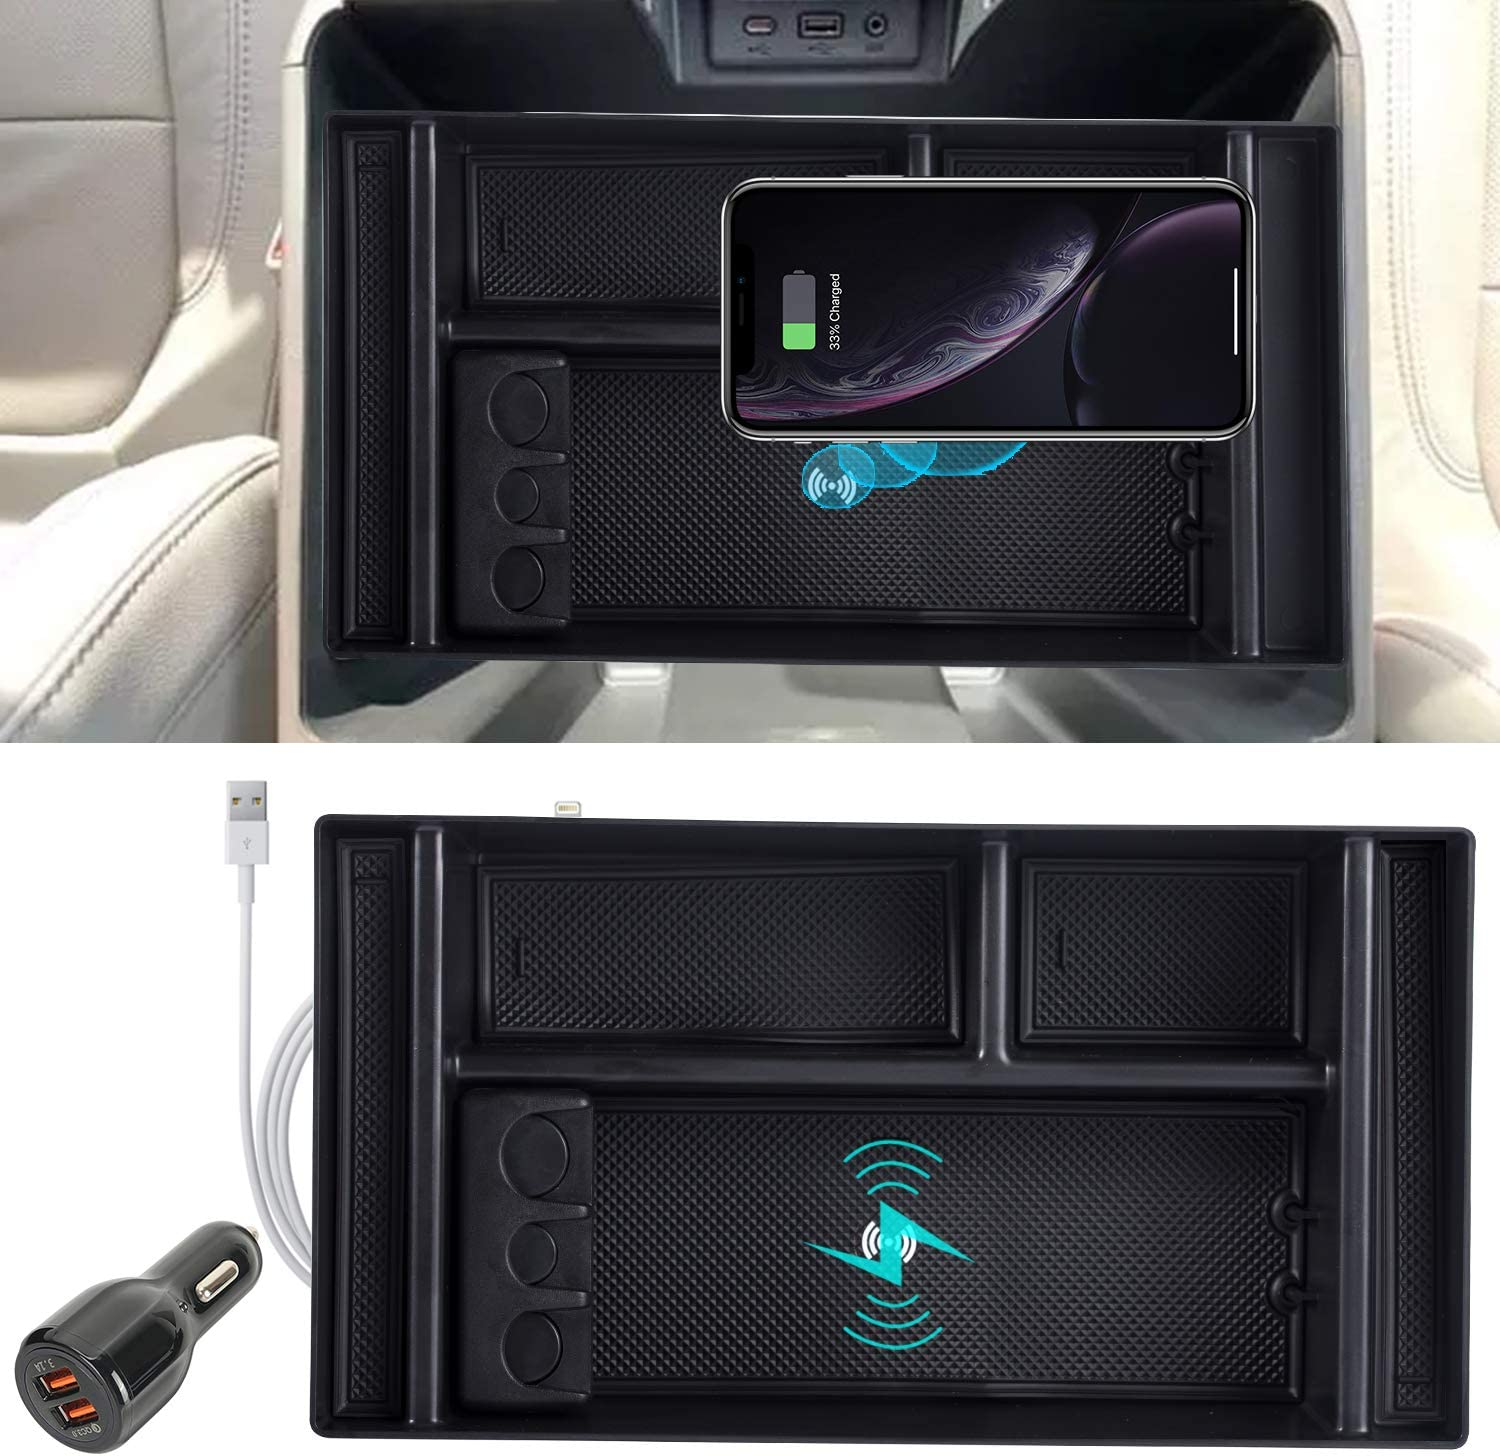 ROCCS Wireless New York Mall Bombing free shipping Charging Center Console Tray 2 for 2019 Organizer